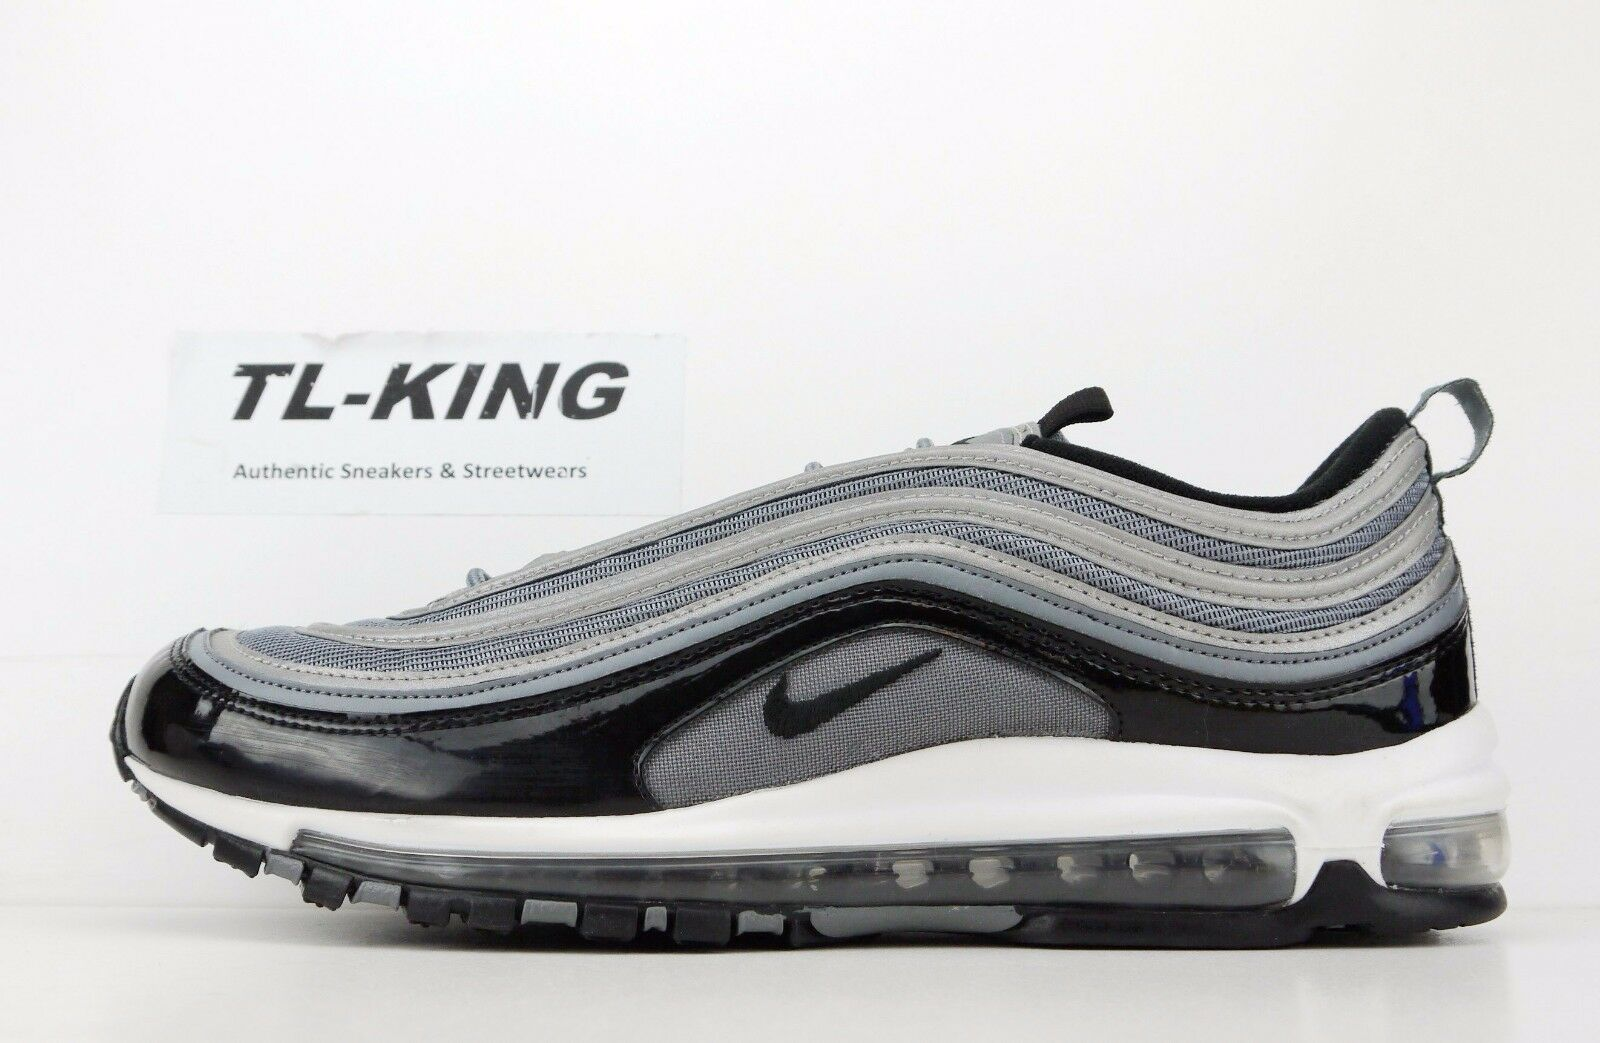 max air Nike 97 gris blancoo negro bw 010 921826 Patent Cold